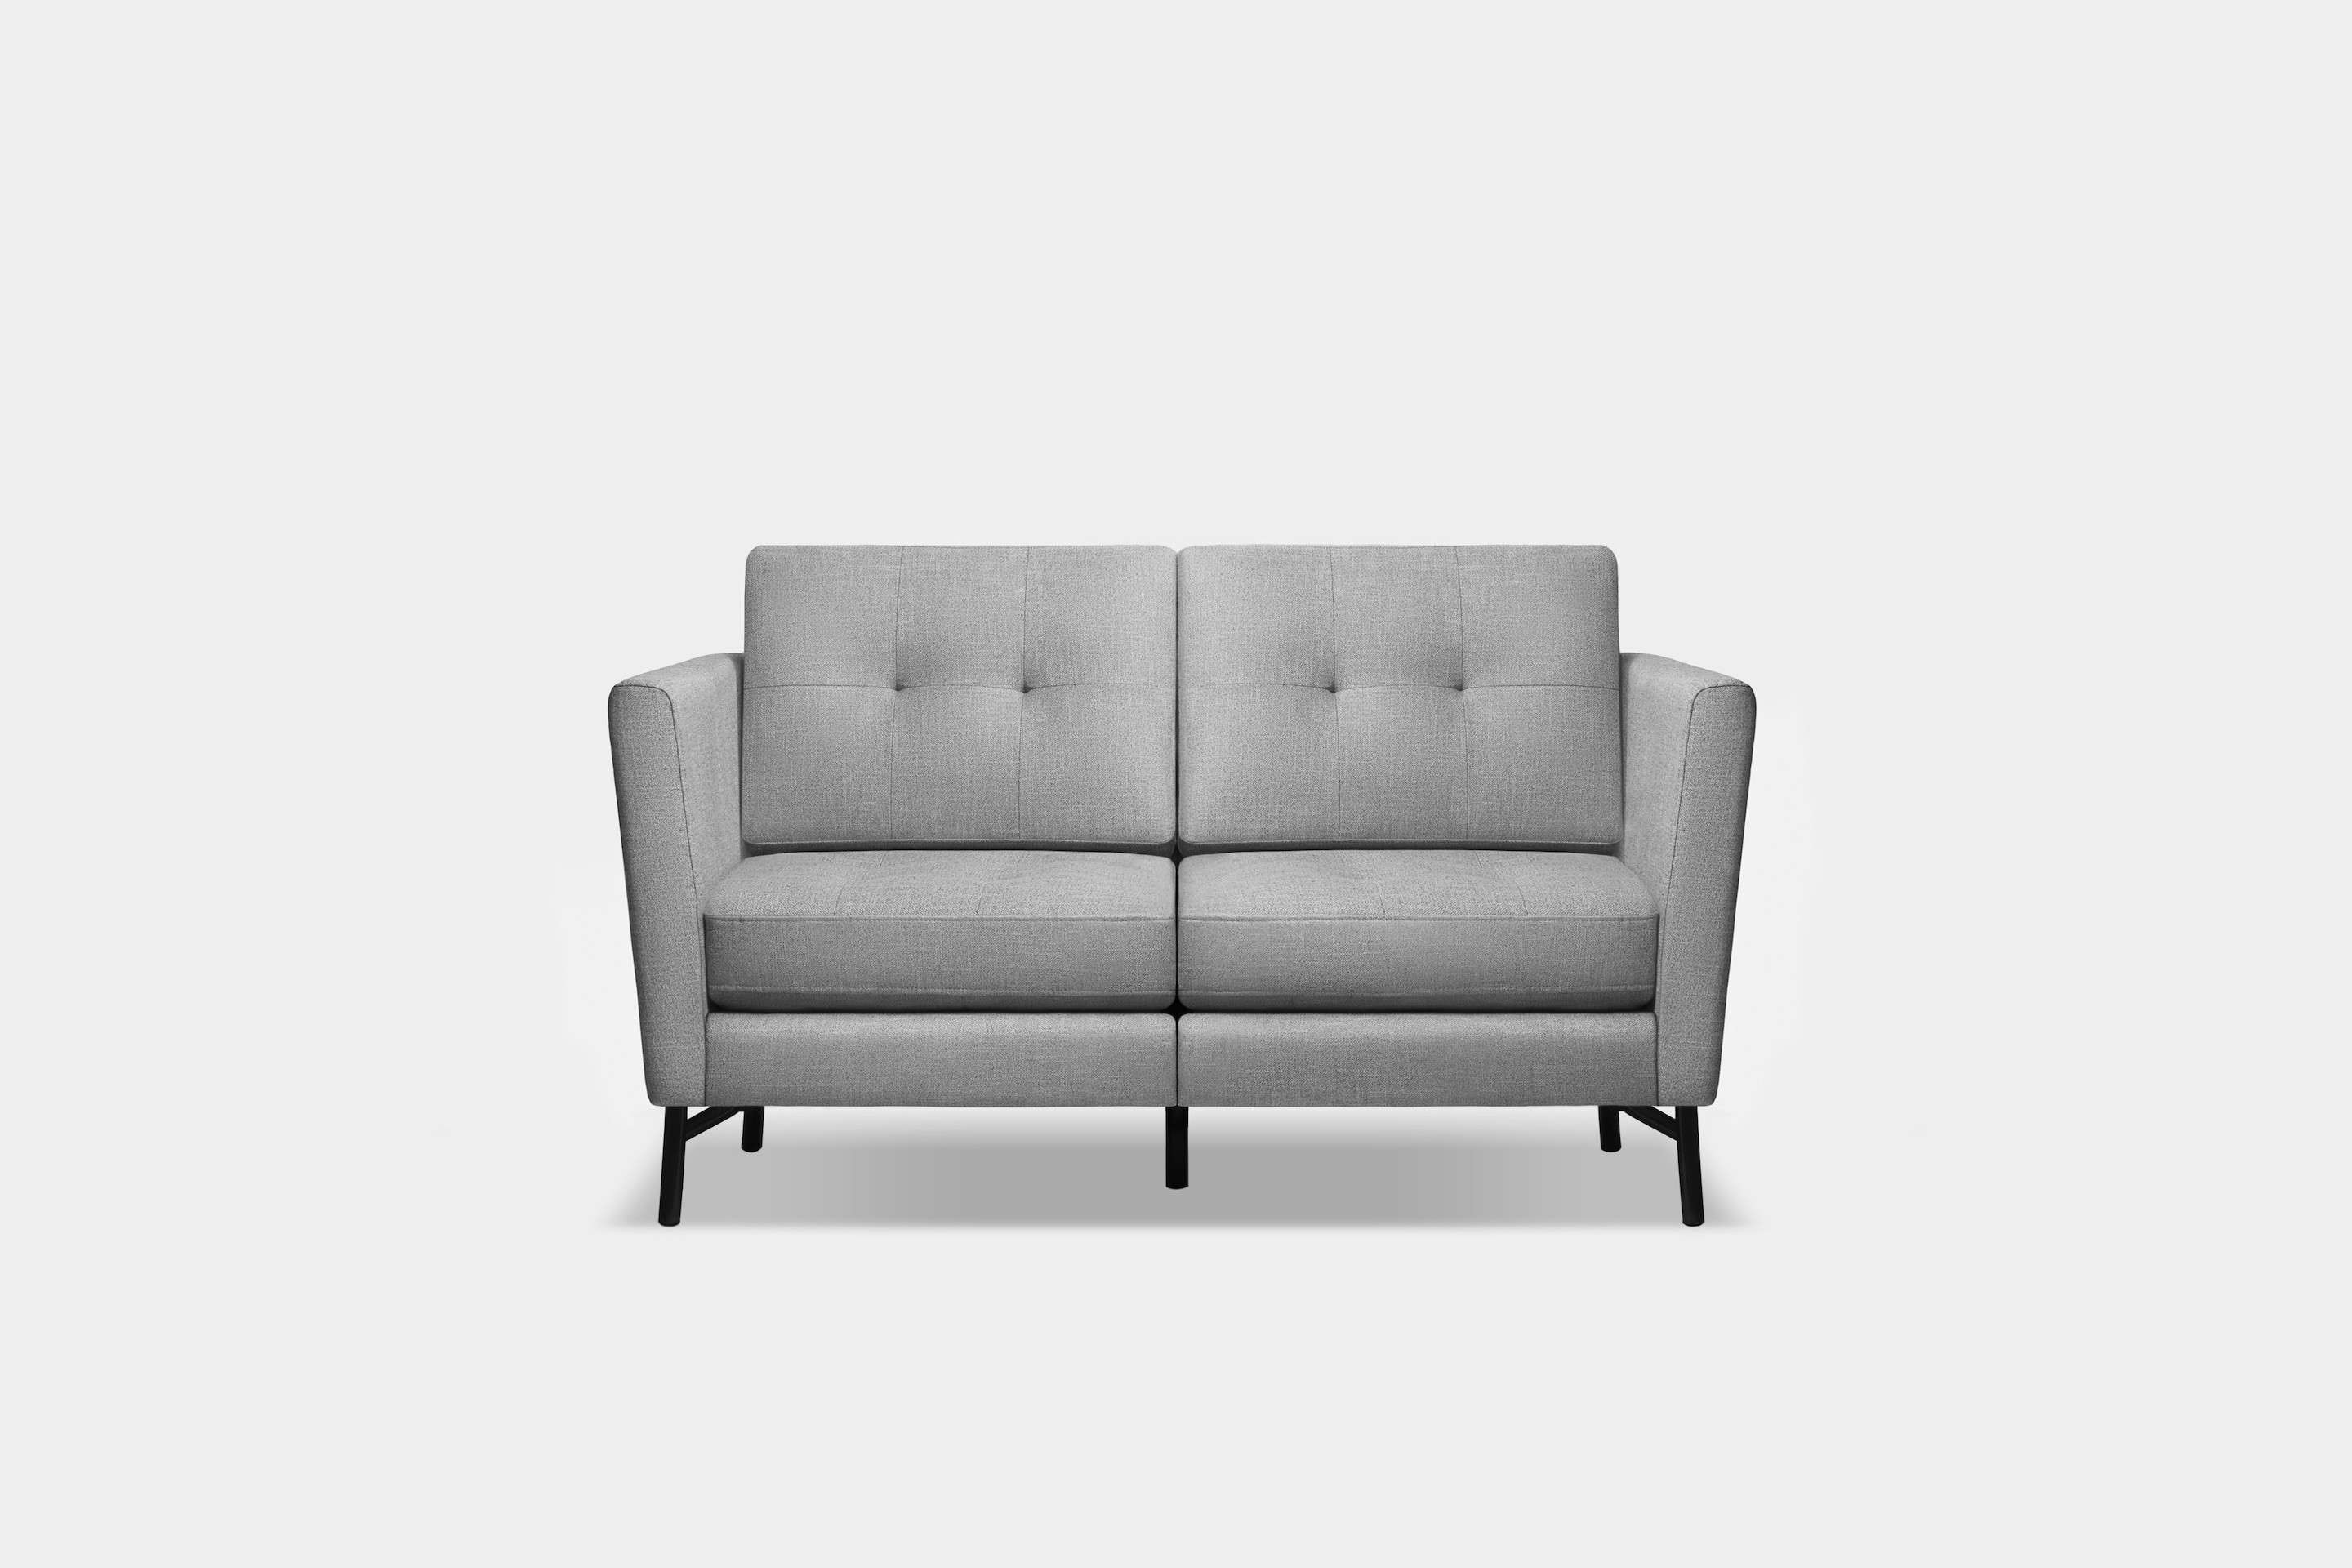 Sofas & Couches Curated Collection from Remodelista